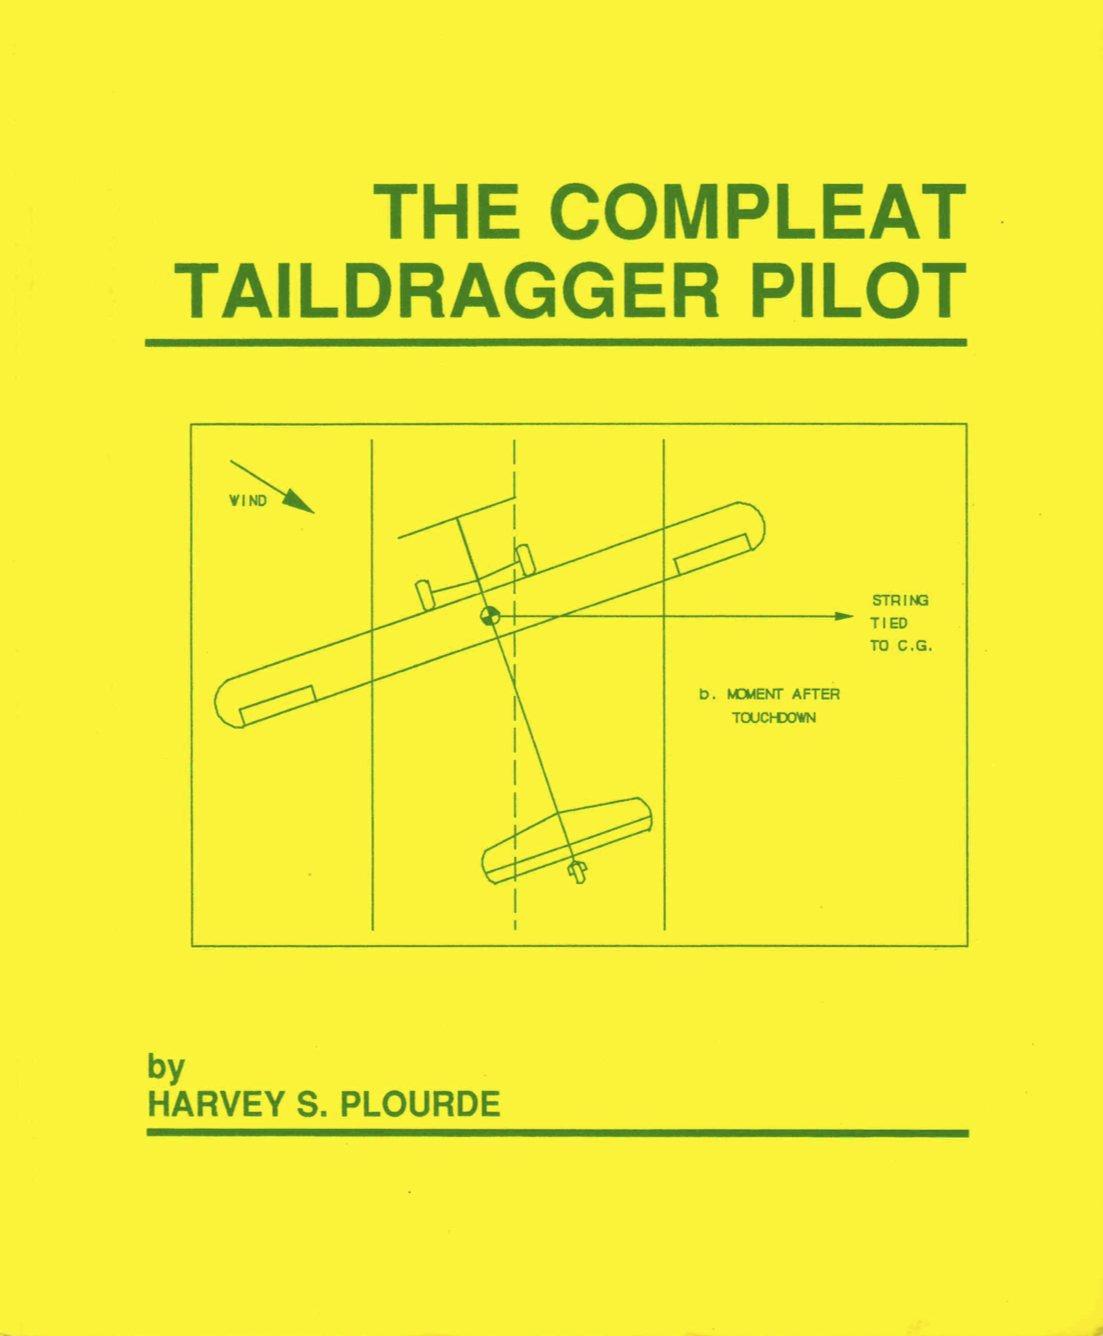 Compleat Taildragger Pilot.png